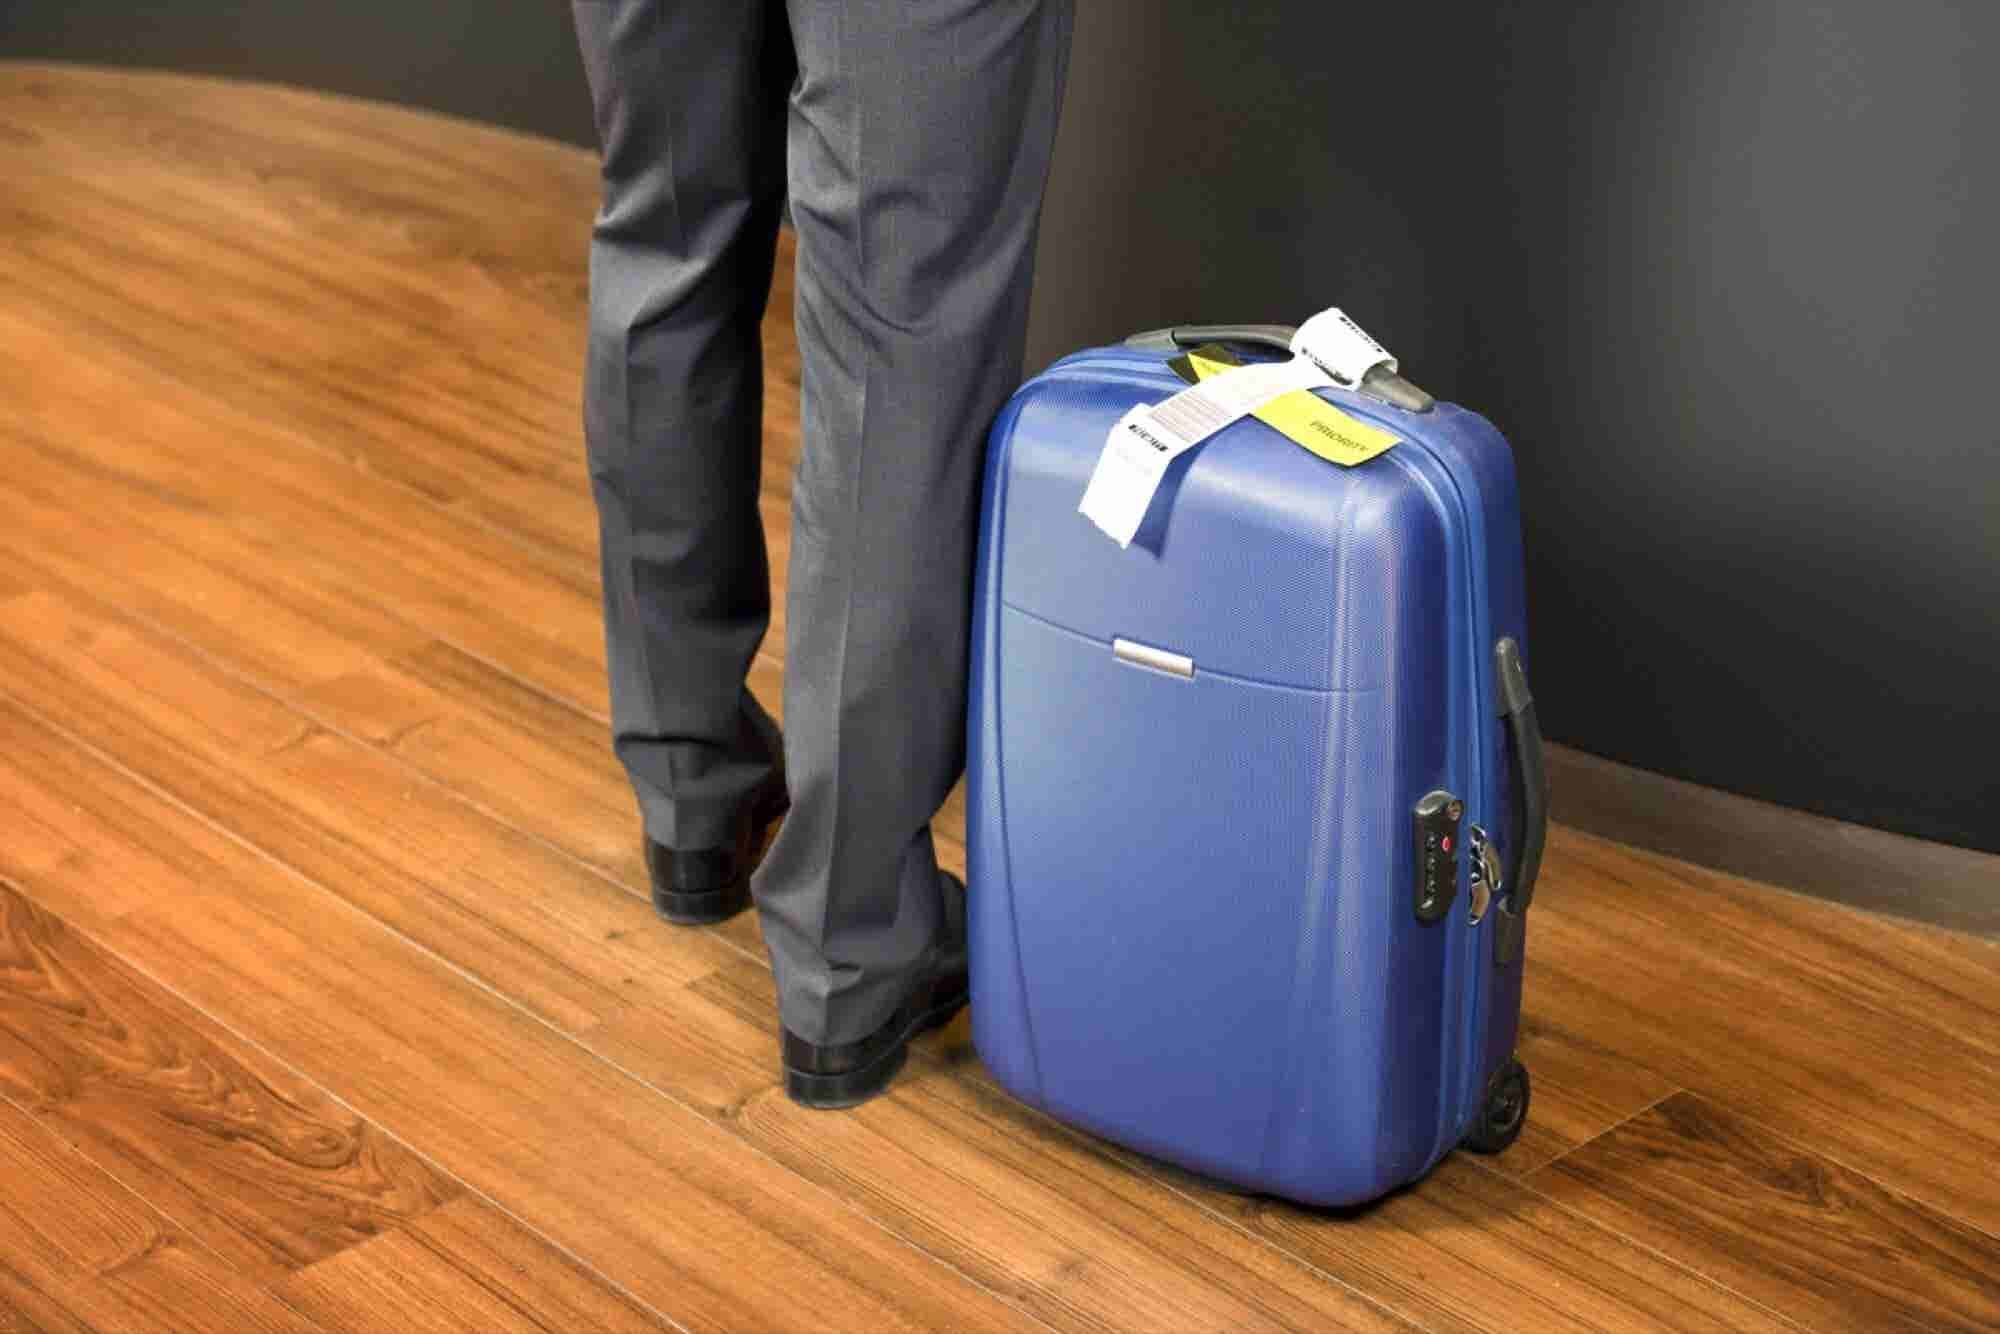 #5 Key Issues in Travel Industry That Will Affect Your Next Business Trip